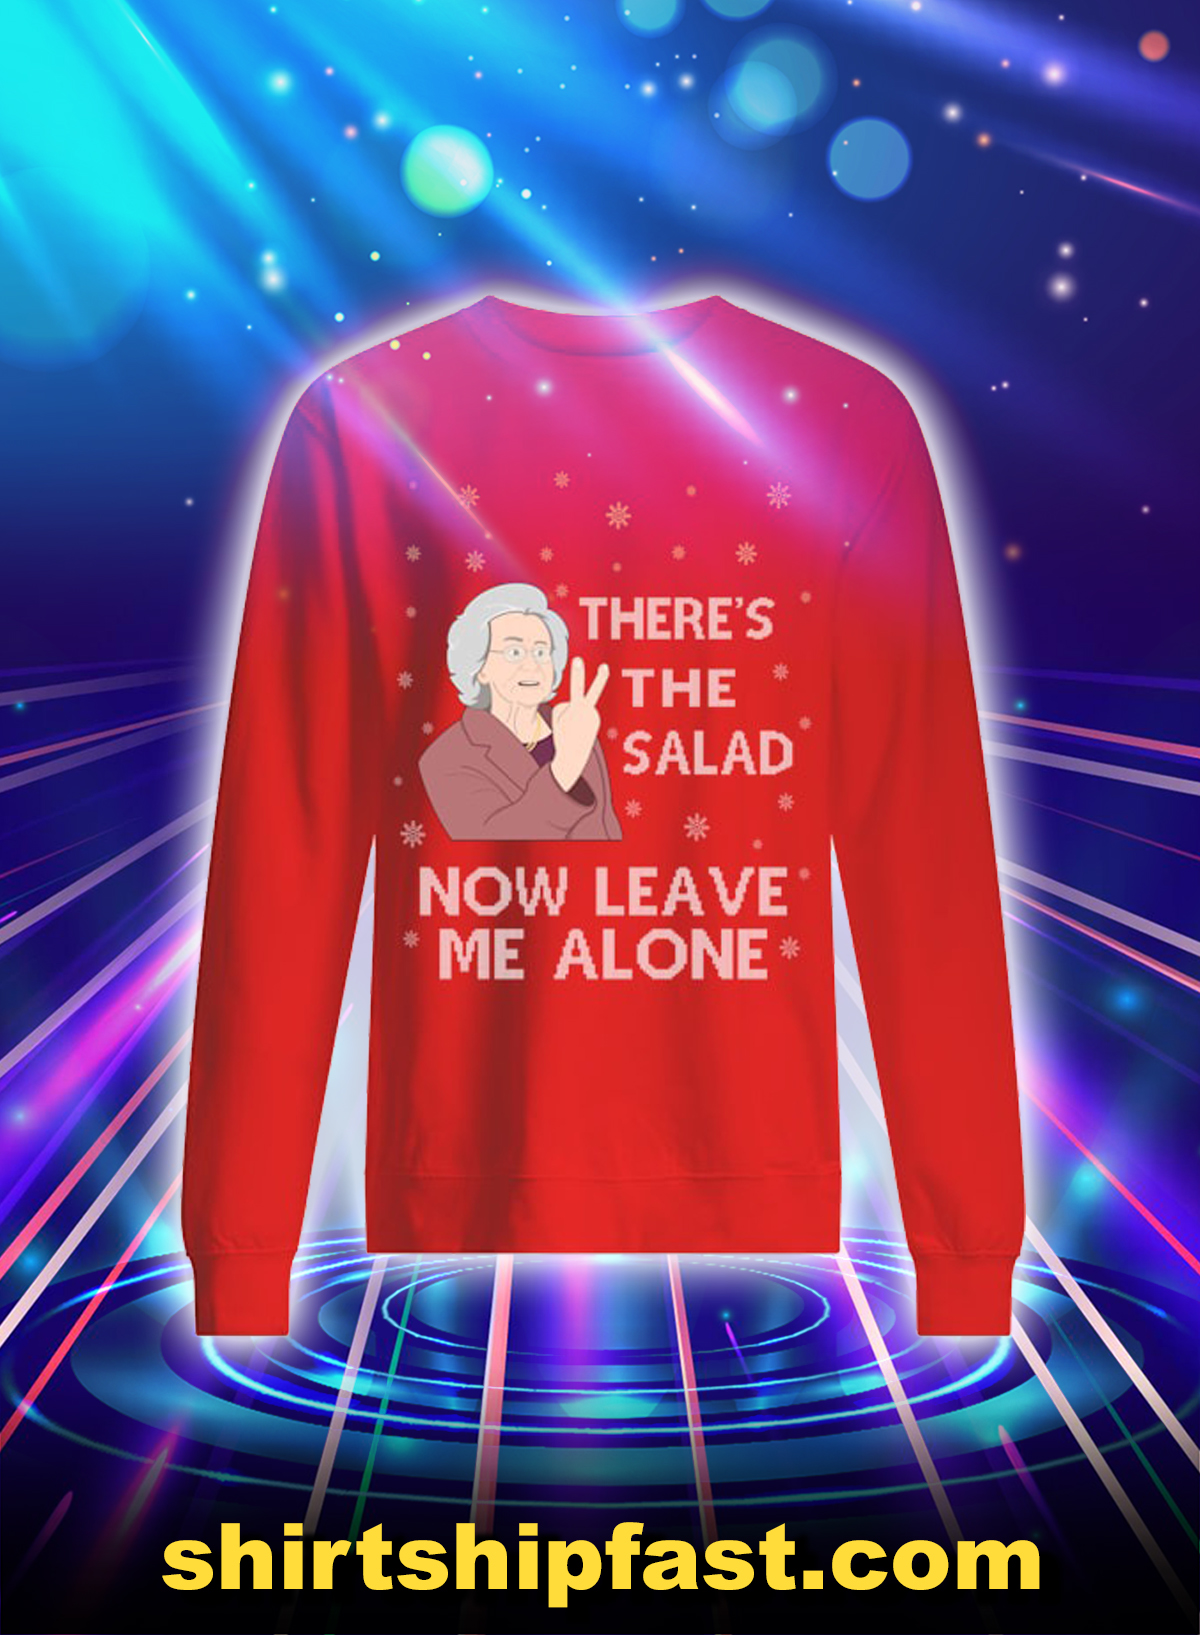 There's the salad now leave me alone sweatshirt and jumper - Red